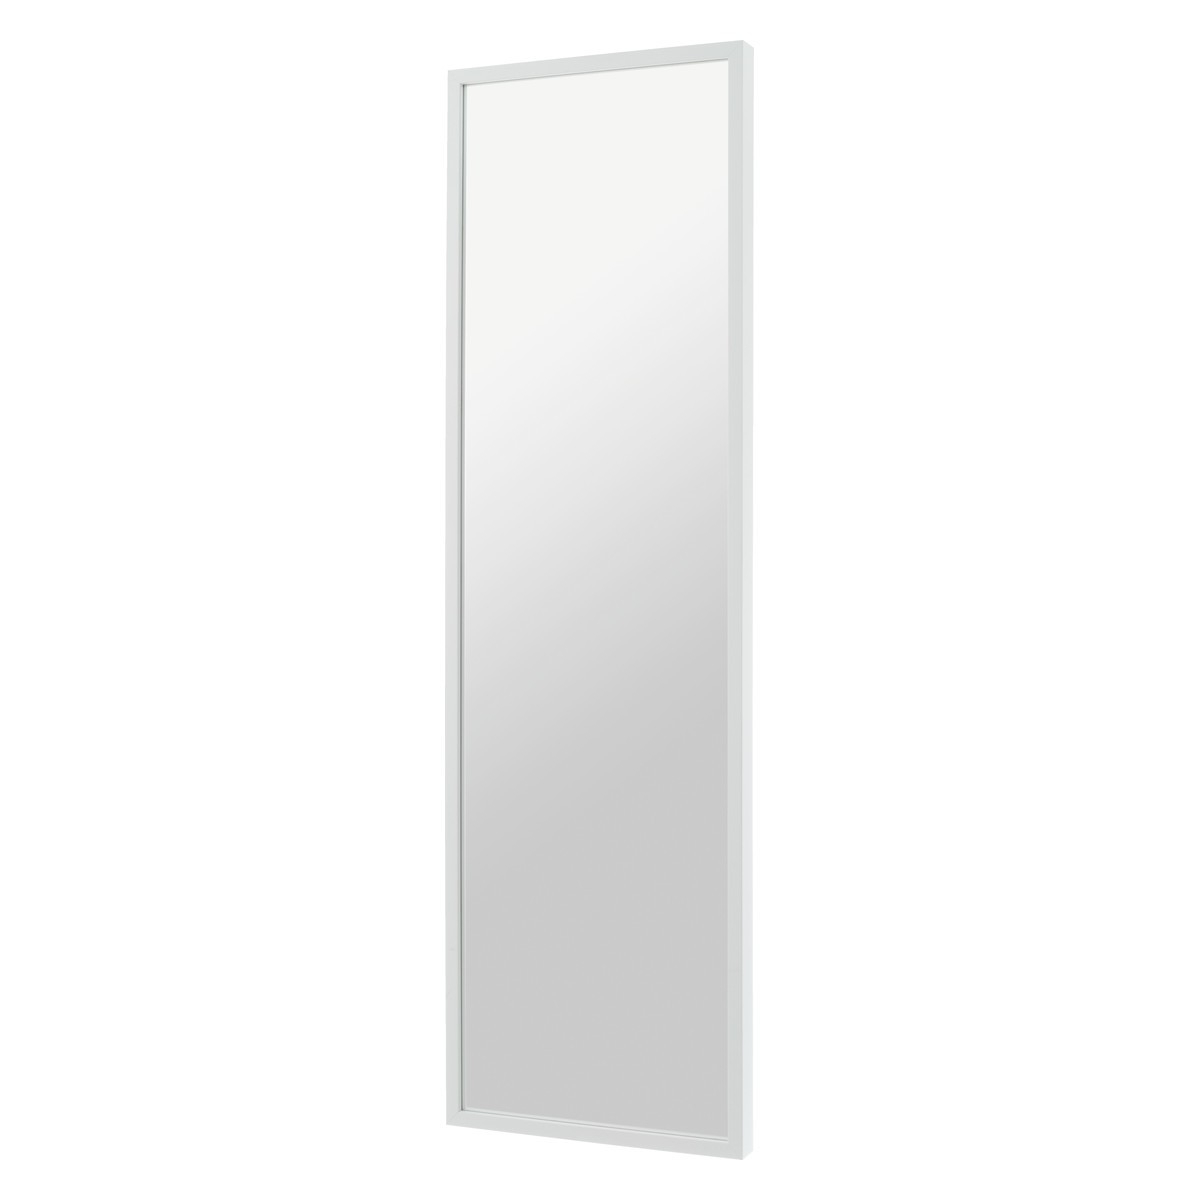 Long White Wall Mirrors Inside 2020 White Birch 40 X 140cm White Full Length Wall Mirror (View 8 of 20)